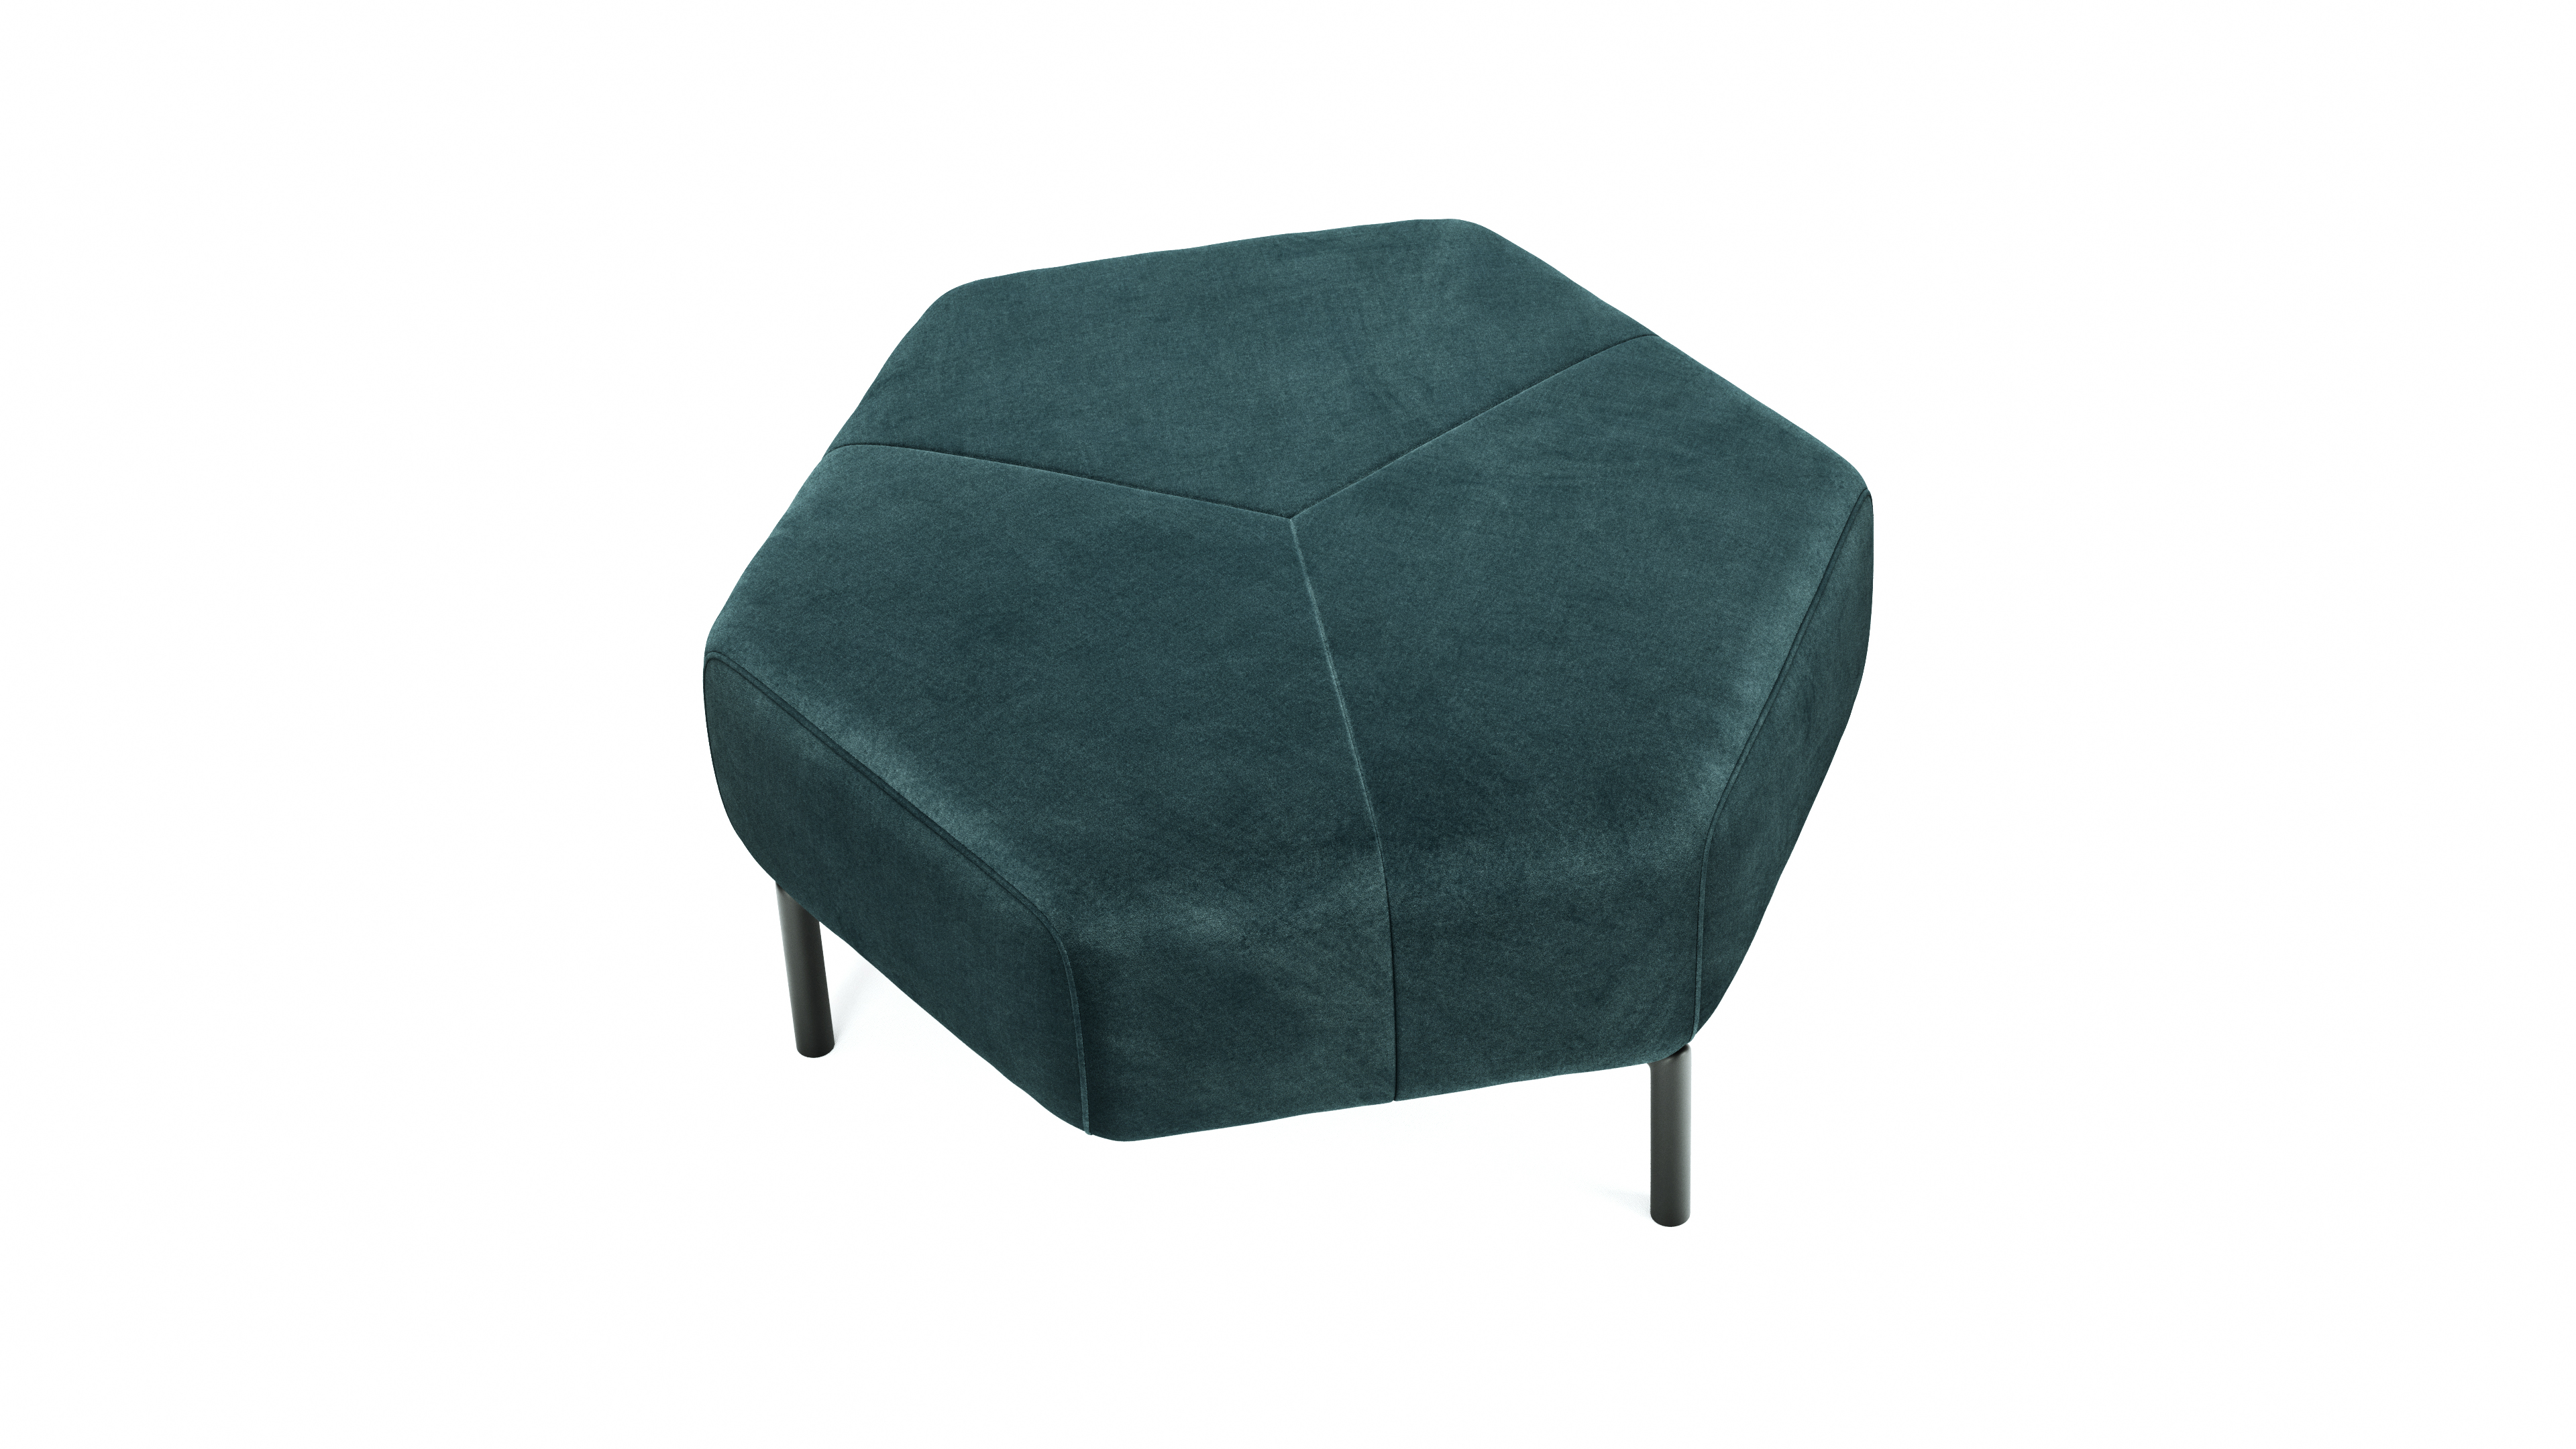 Comfort Republic Hocker Franz freisteller 2 102169 | Homepoet